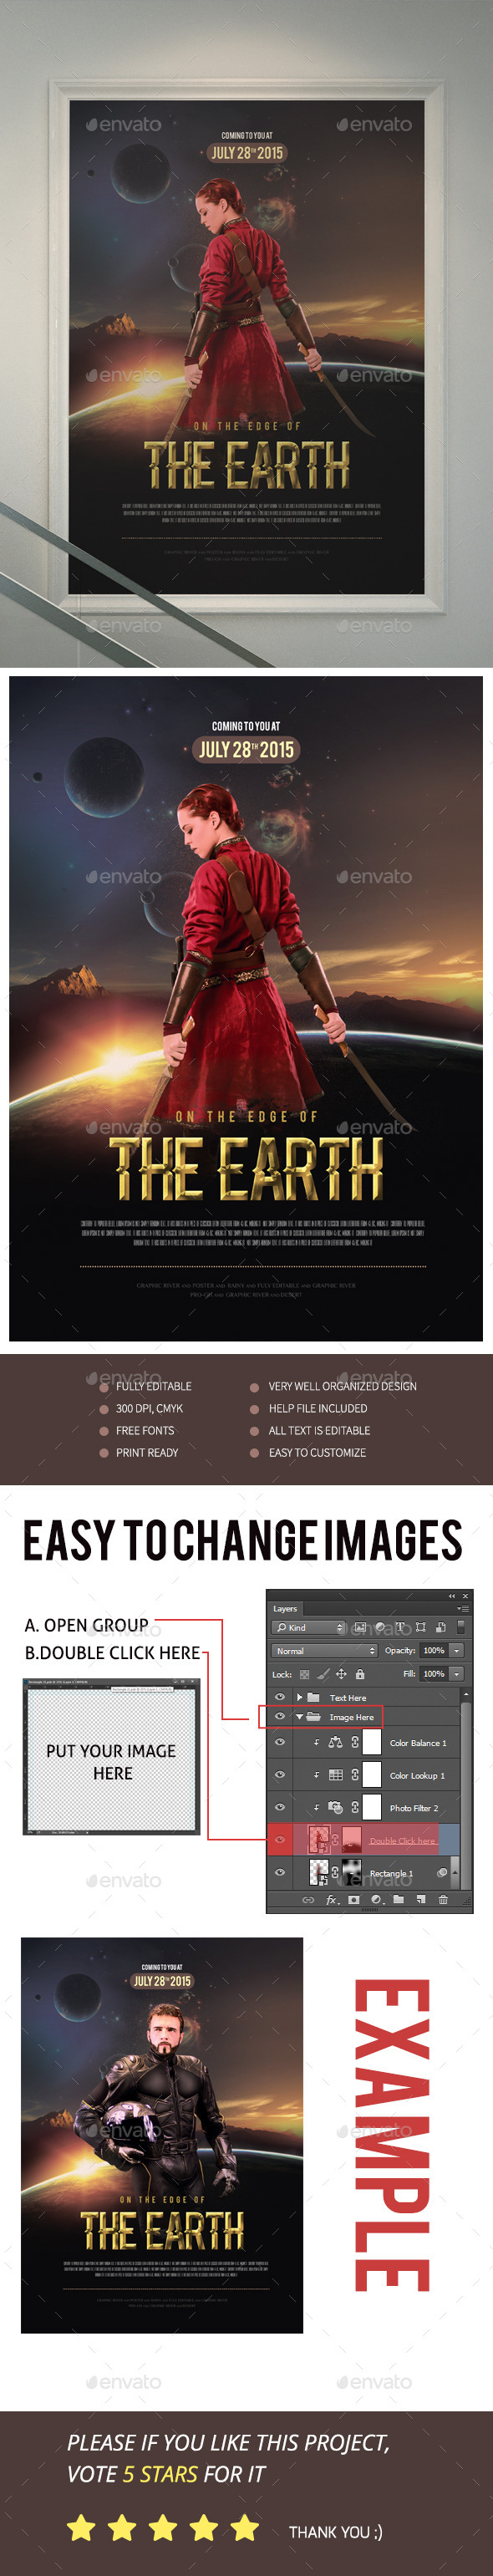 On The Edge Of The Earth Movie Poster/Flyer